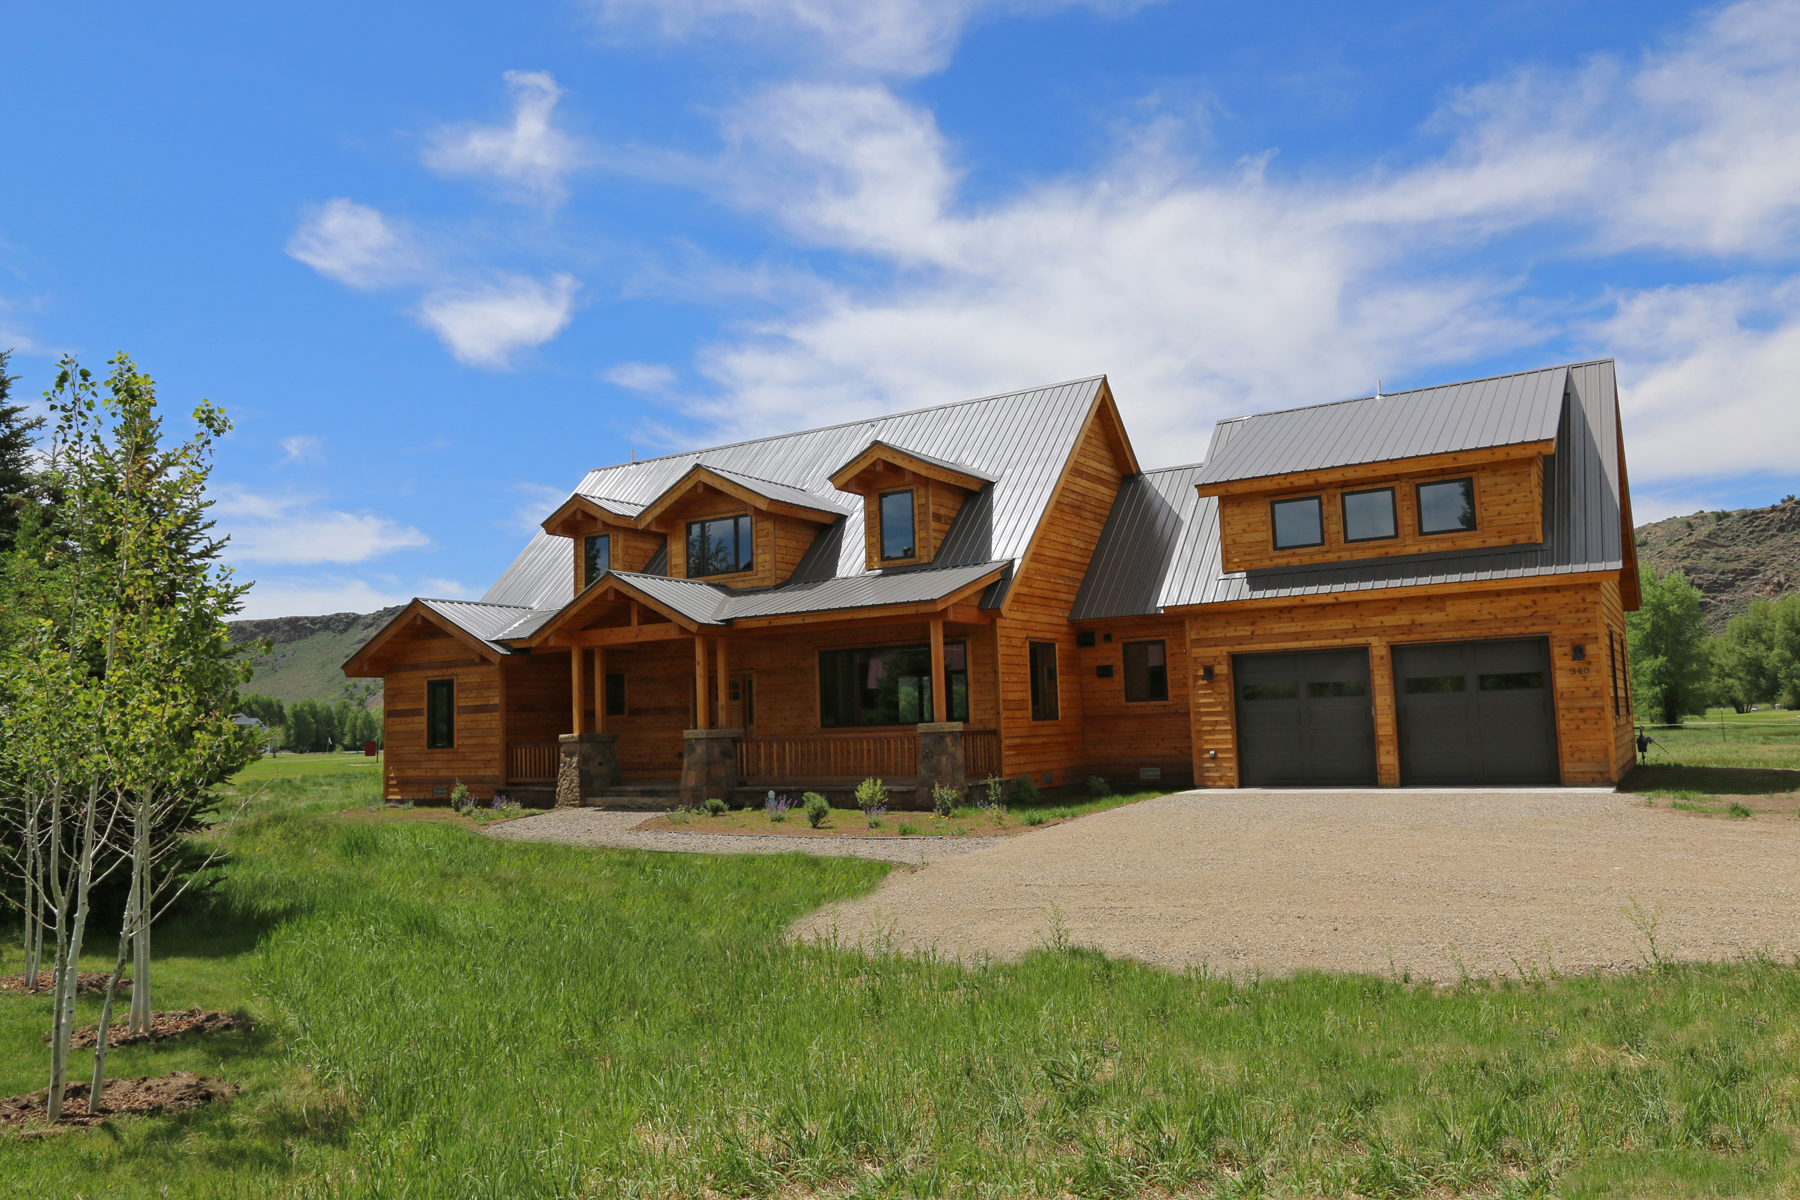 Single Family Home for Active at New Construction Located on the 17th Hole of Dos Rios Golf Club 340 Tomichi Trail Gunnison, Colorado 81230 United States